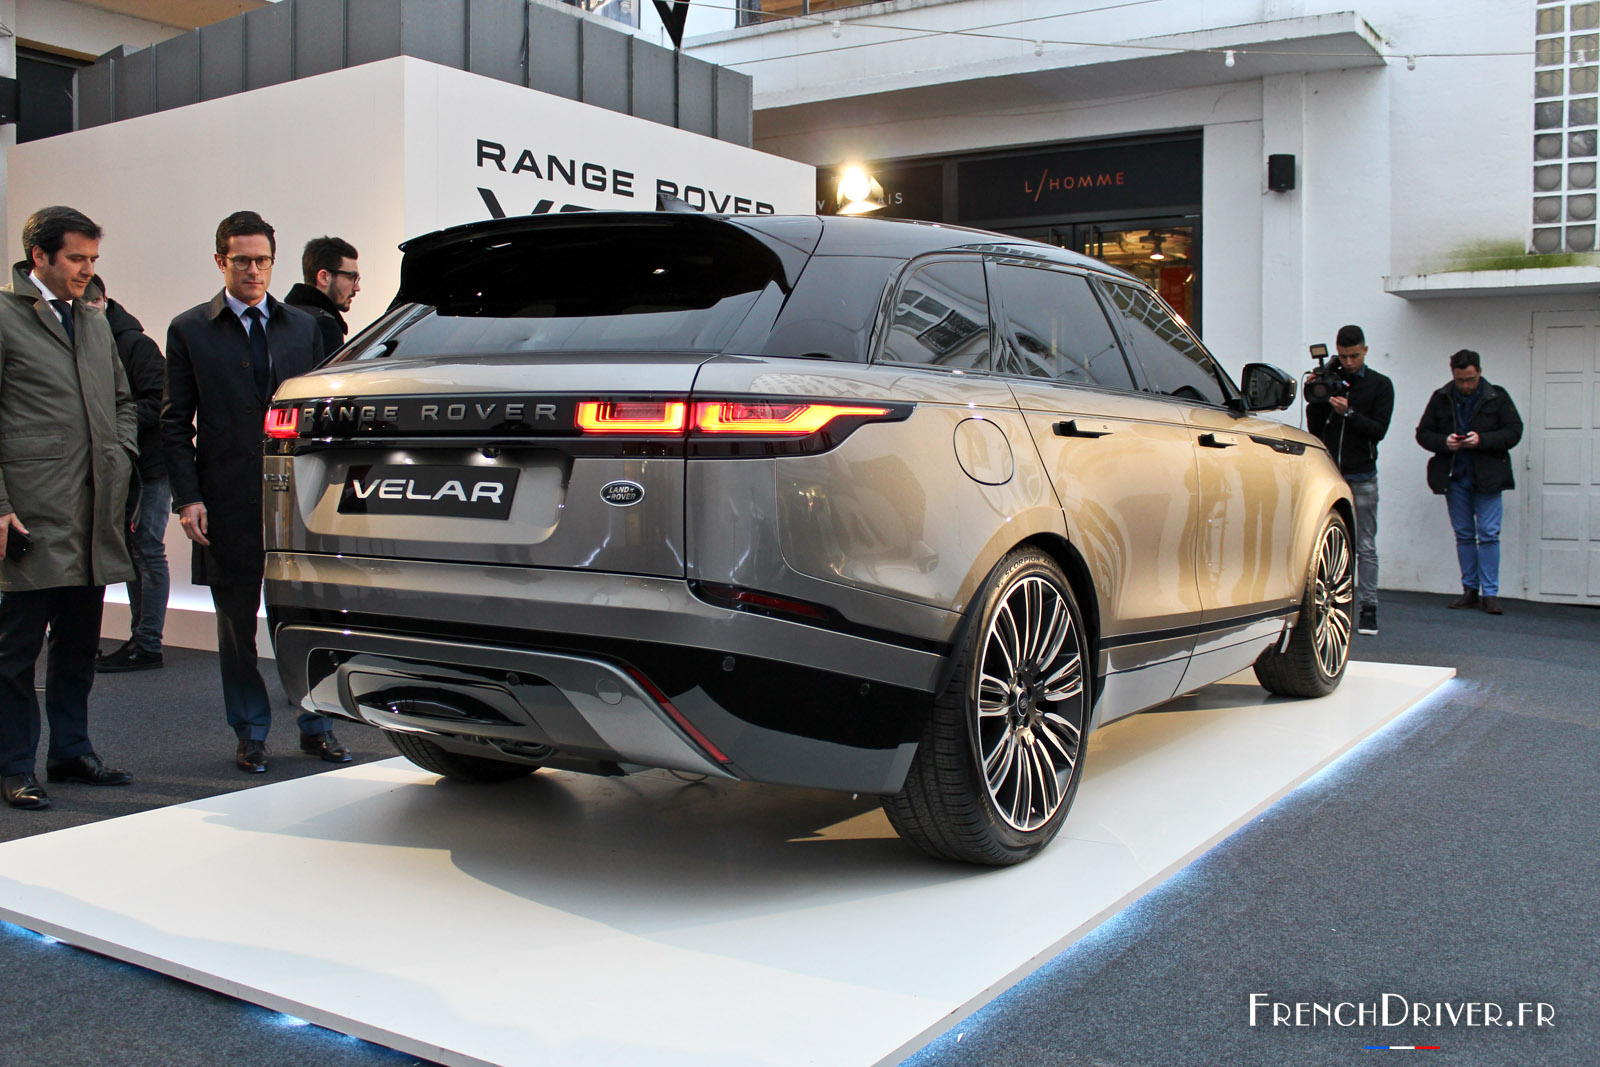 photos le range rover velar fait ses premiers pas paris french driver. Black Bedroom Furniture Sets. Home Design Ideas